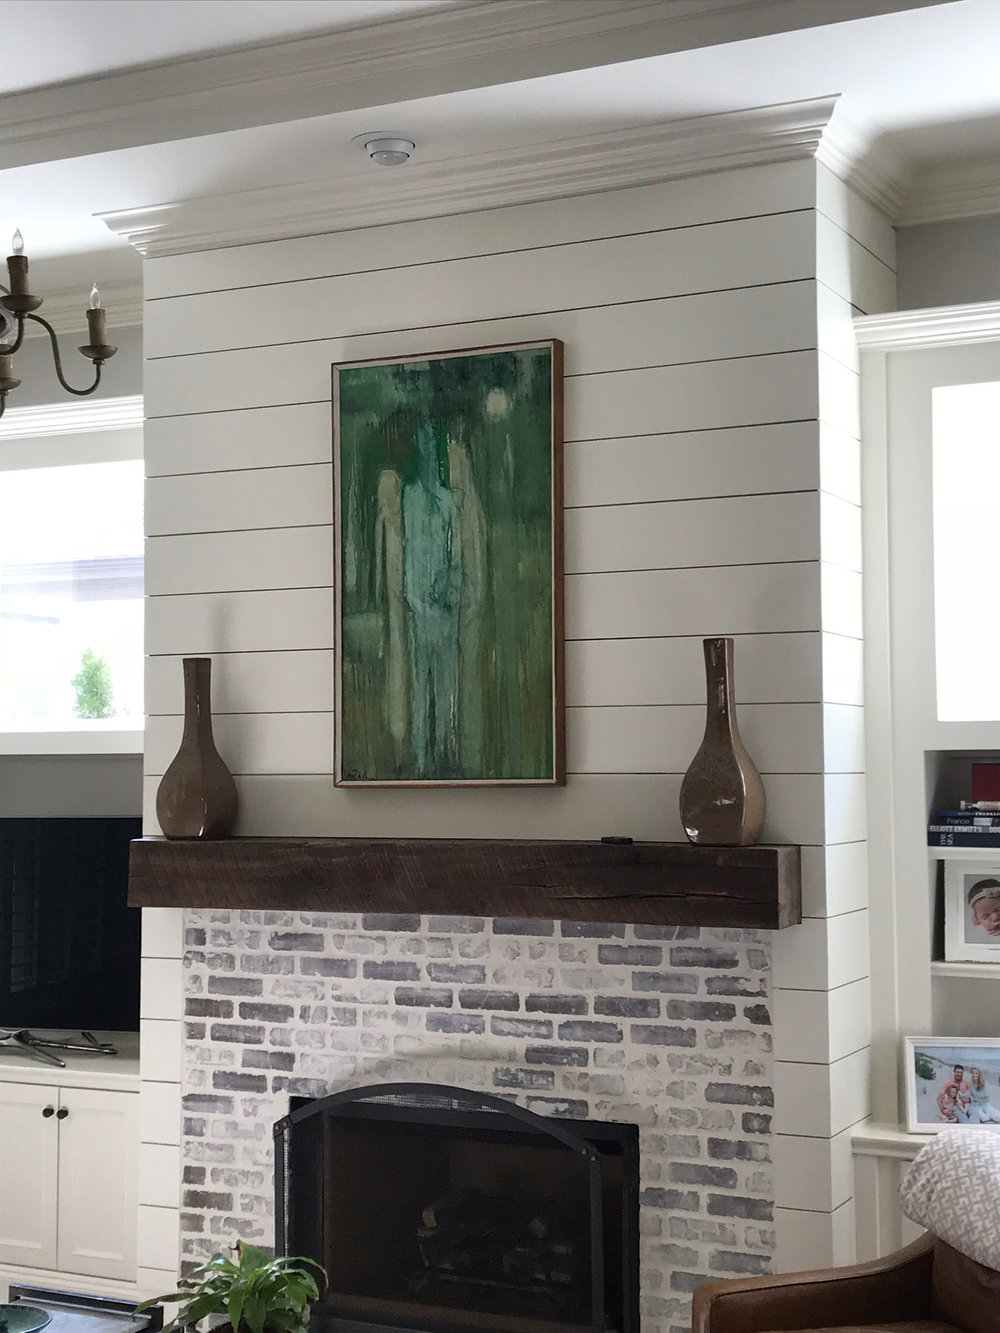 Mantels by Good Wood - We carry dozens of options of reclaimed beams that you can use to give your mantel a custom, one of a kind look. Browse our lumber store in person to select a finished piece, or choose something raw from the lumber store and finish it at home.